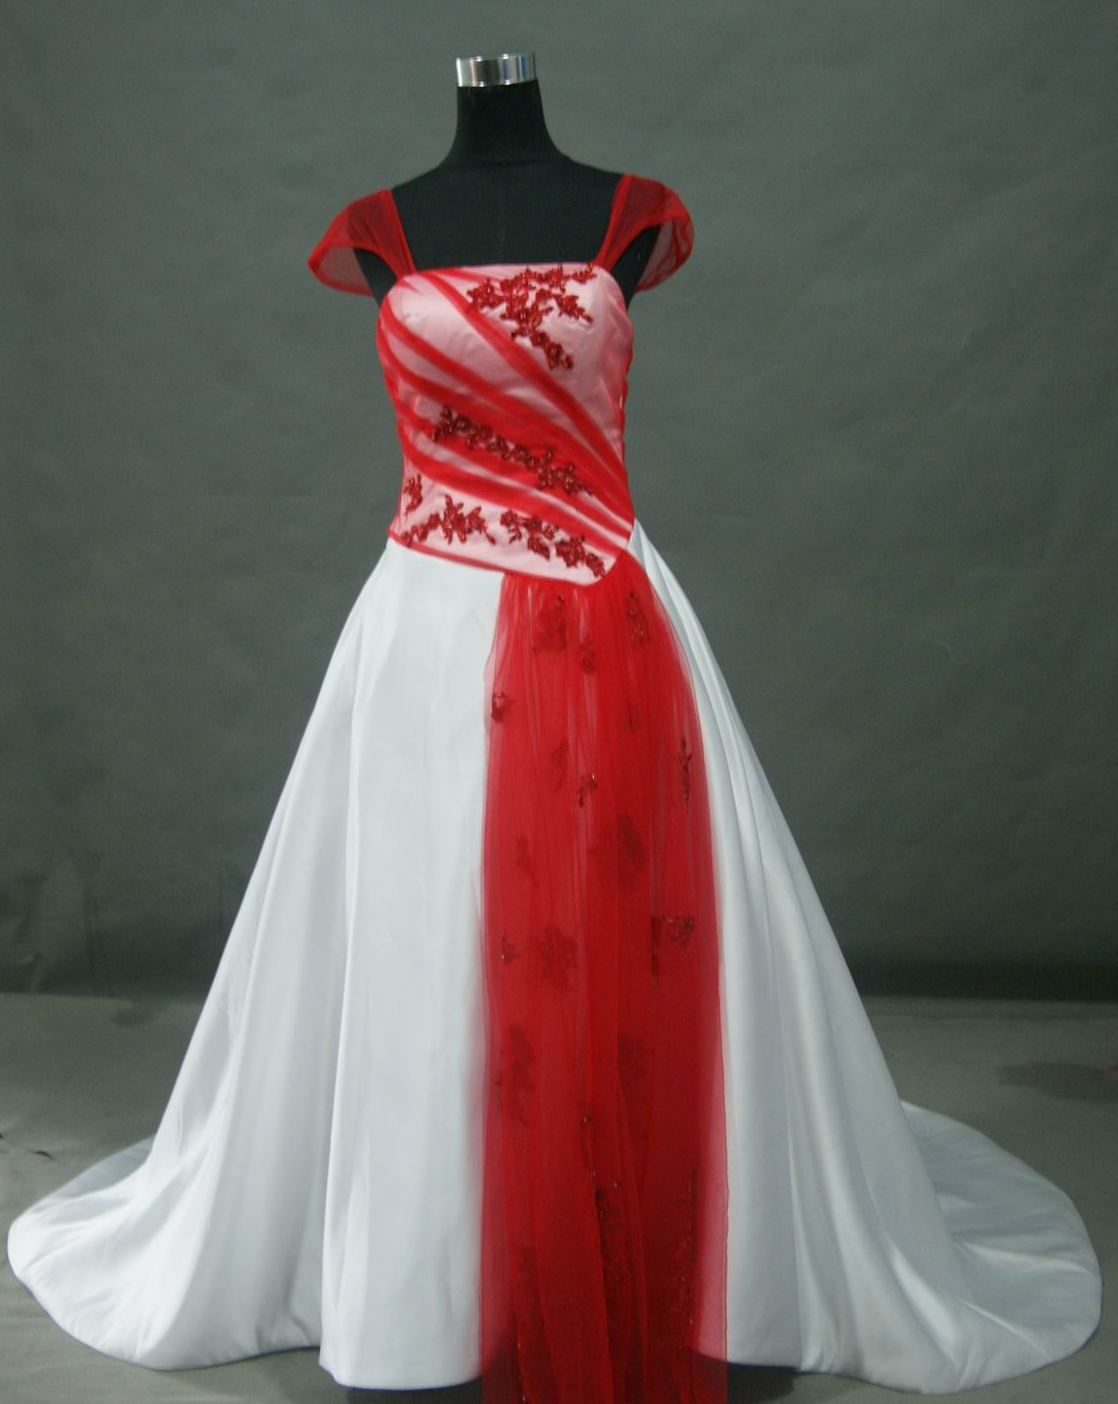 red and black wedding gowns | Red and White Wedding dress | Weddings ...